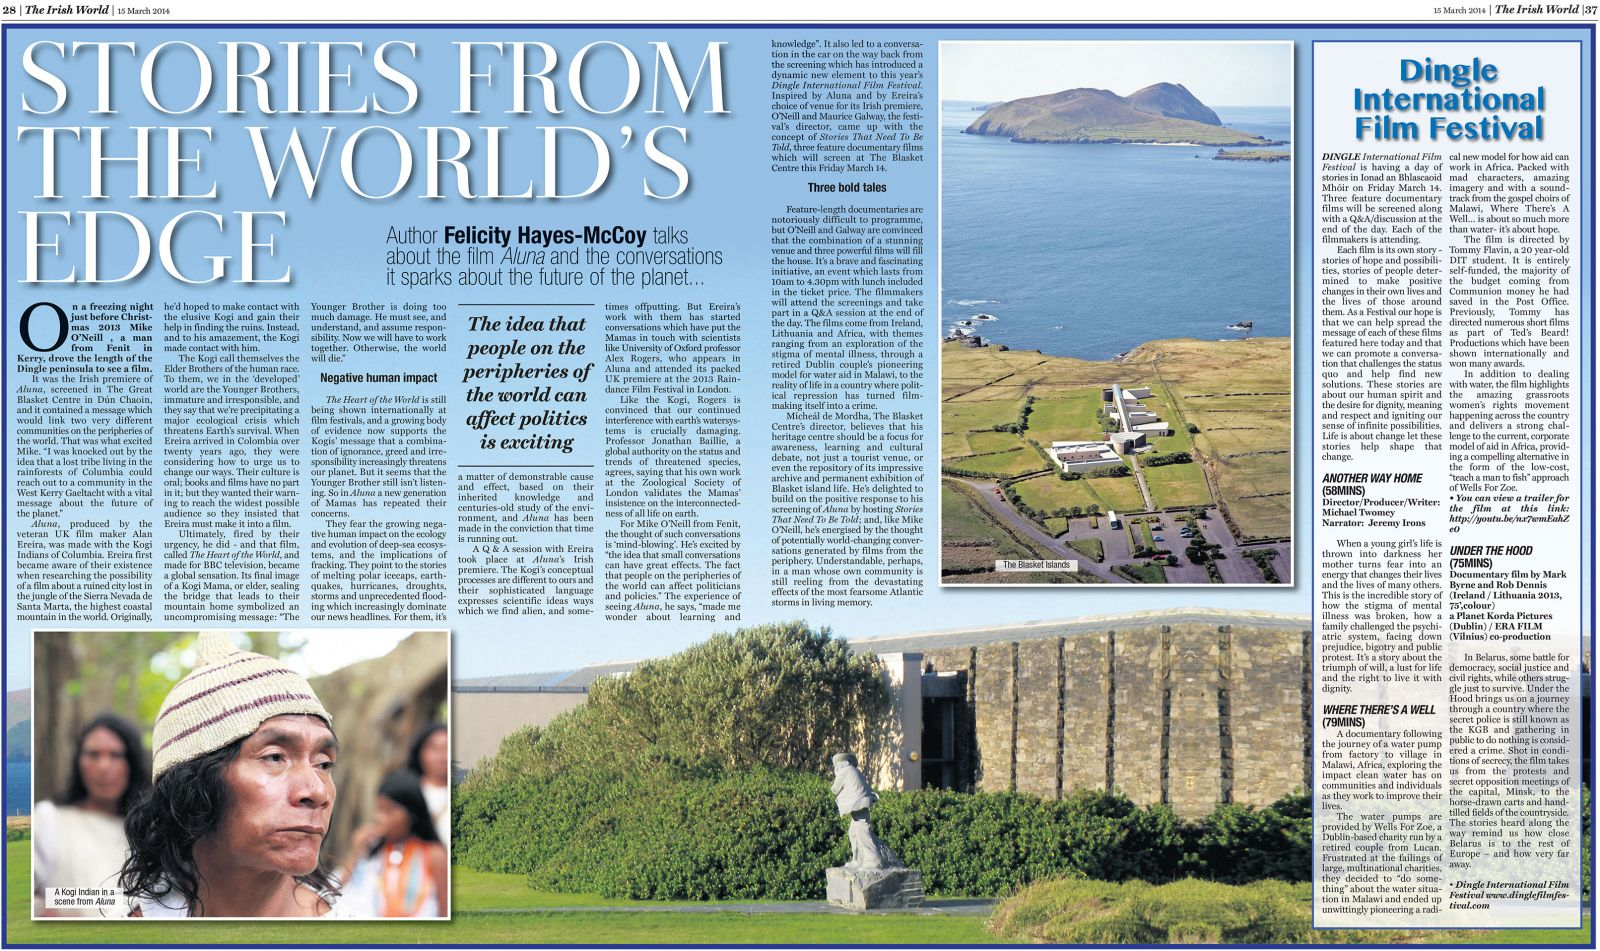 """Stories from the World's Edge"", The Irish World, 15 March 2014"